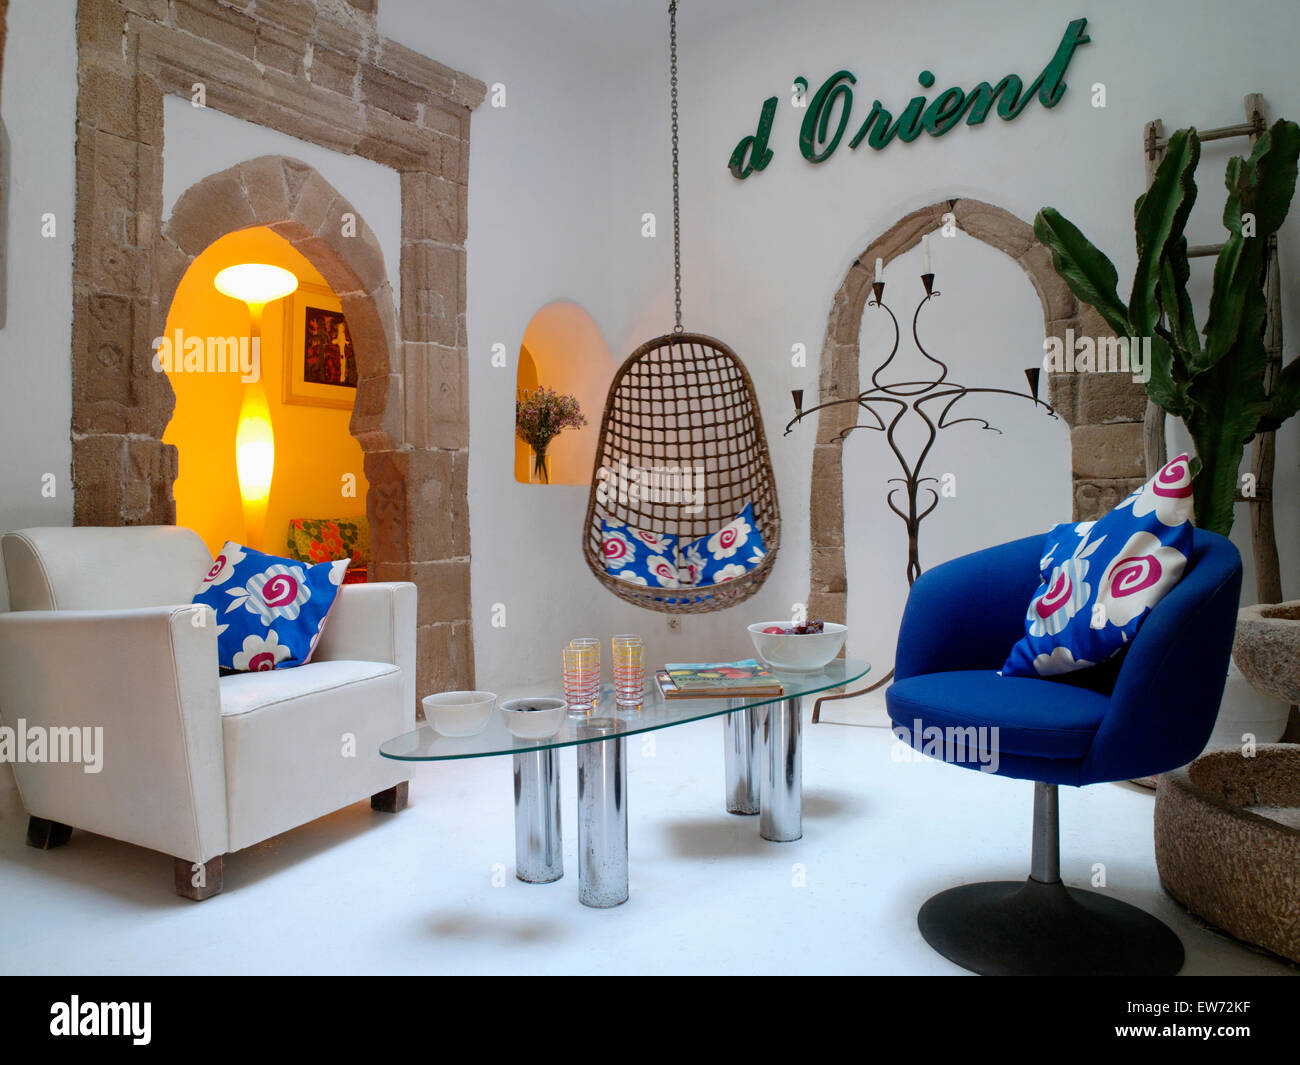 White And Blue Armchairs In Modern Moroccan Living Room With Glass Table  And Hanging Chair Beside Arch With Lighted Lamp